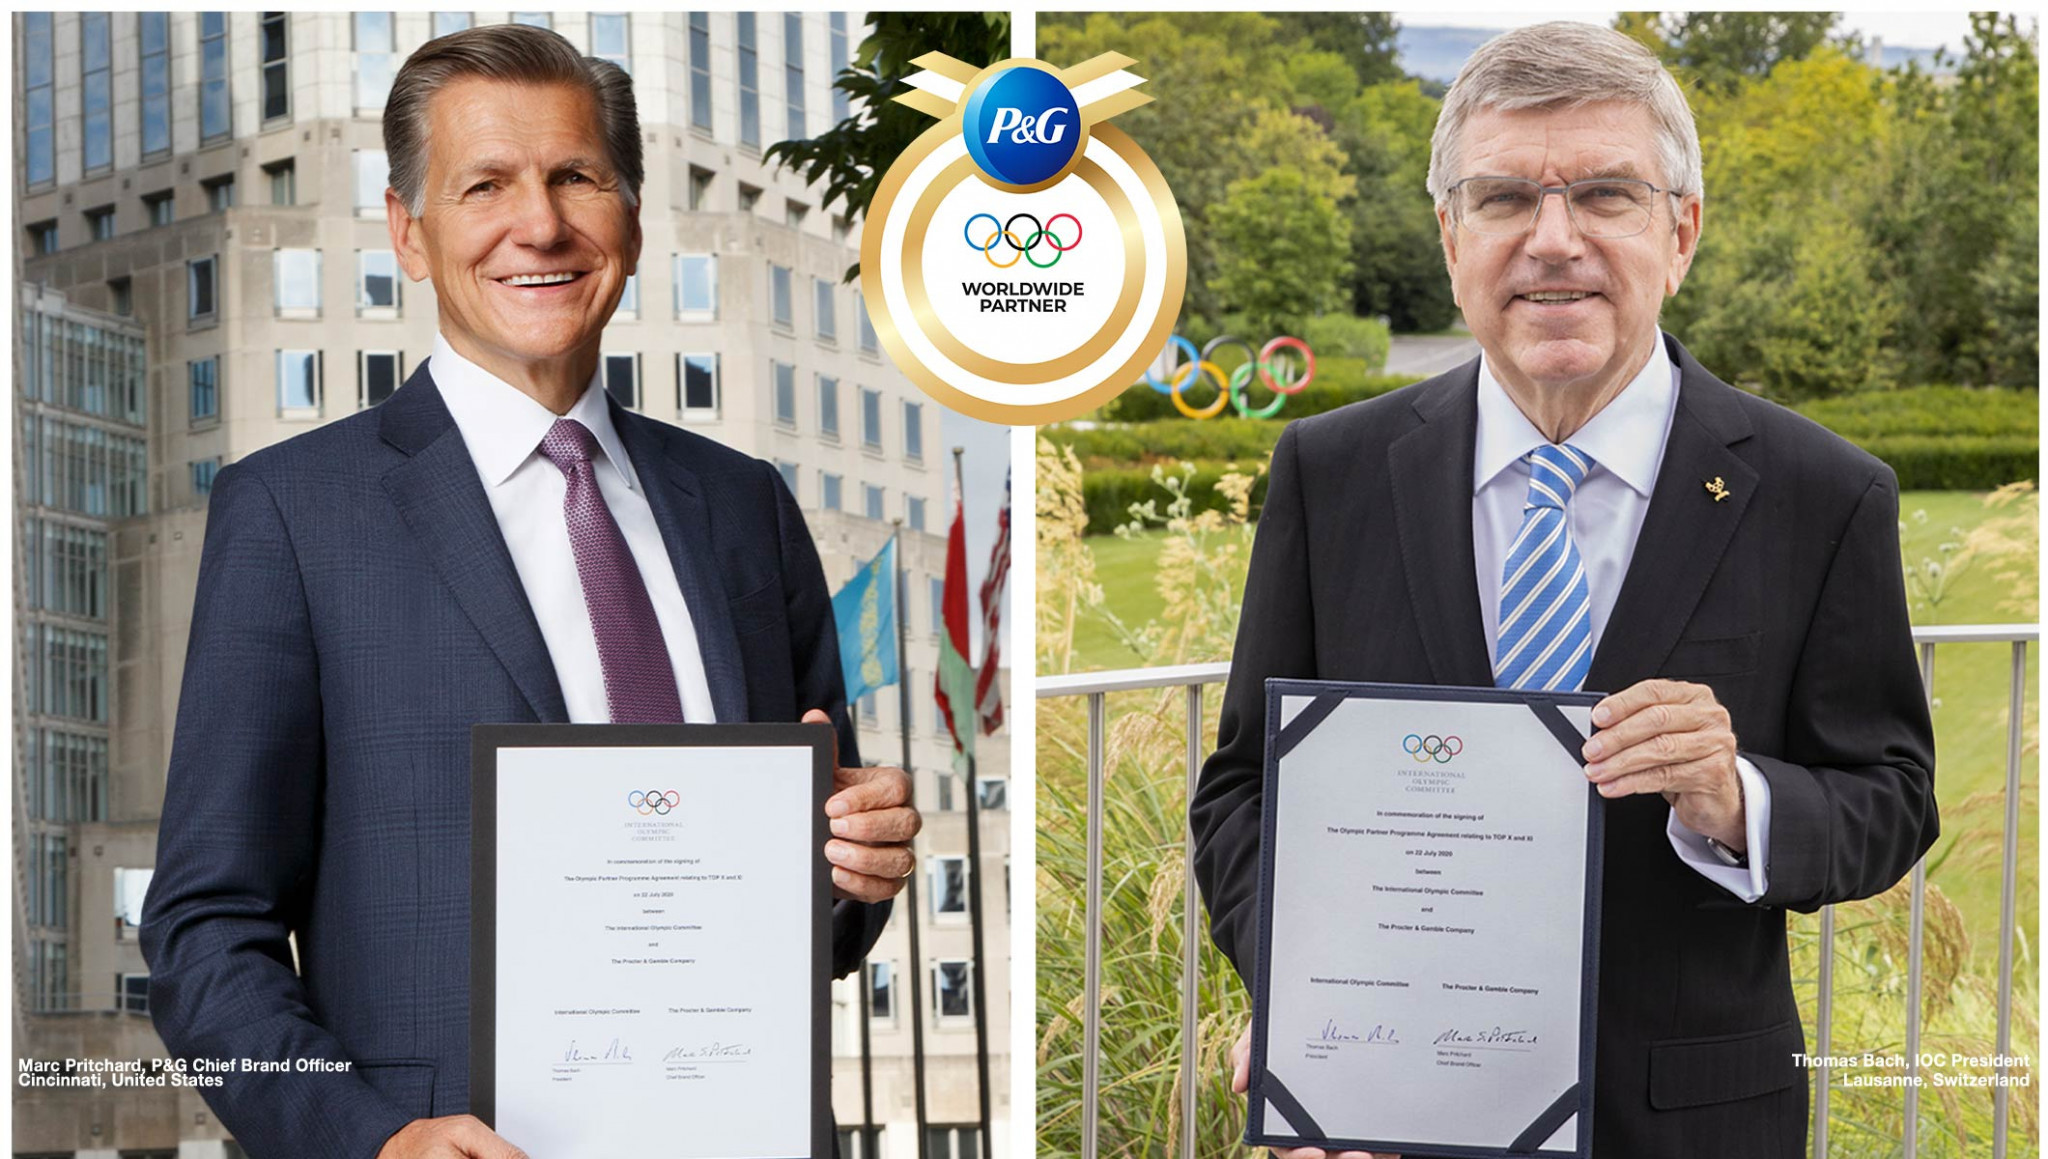 International Olympic Committee extends deal with P&G until 2028